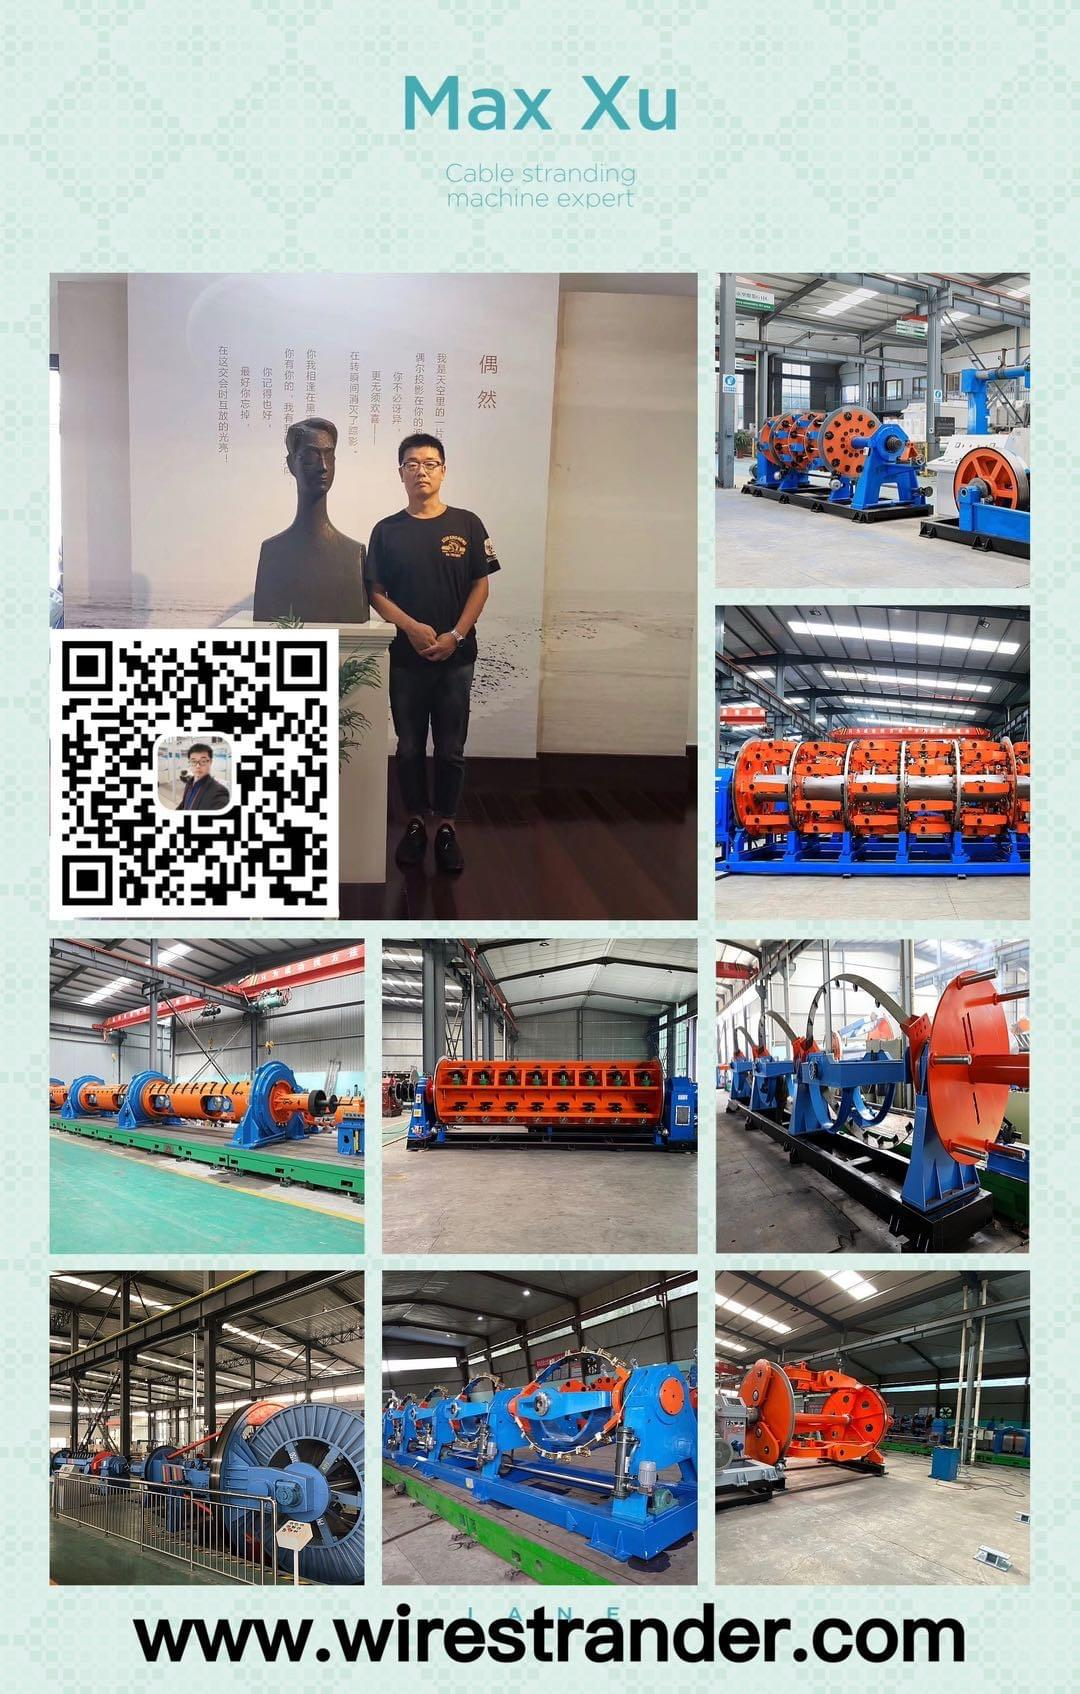 cable stranding&extruding machine expert in china - Max Xu +8618606615951